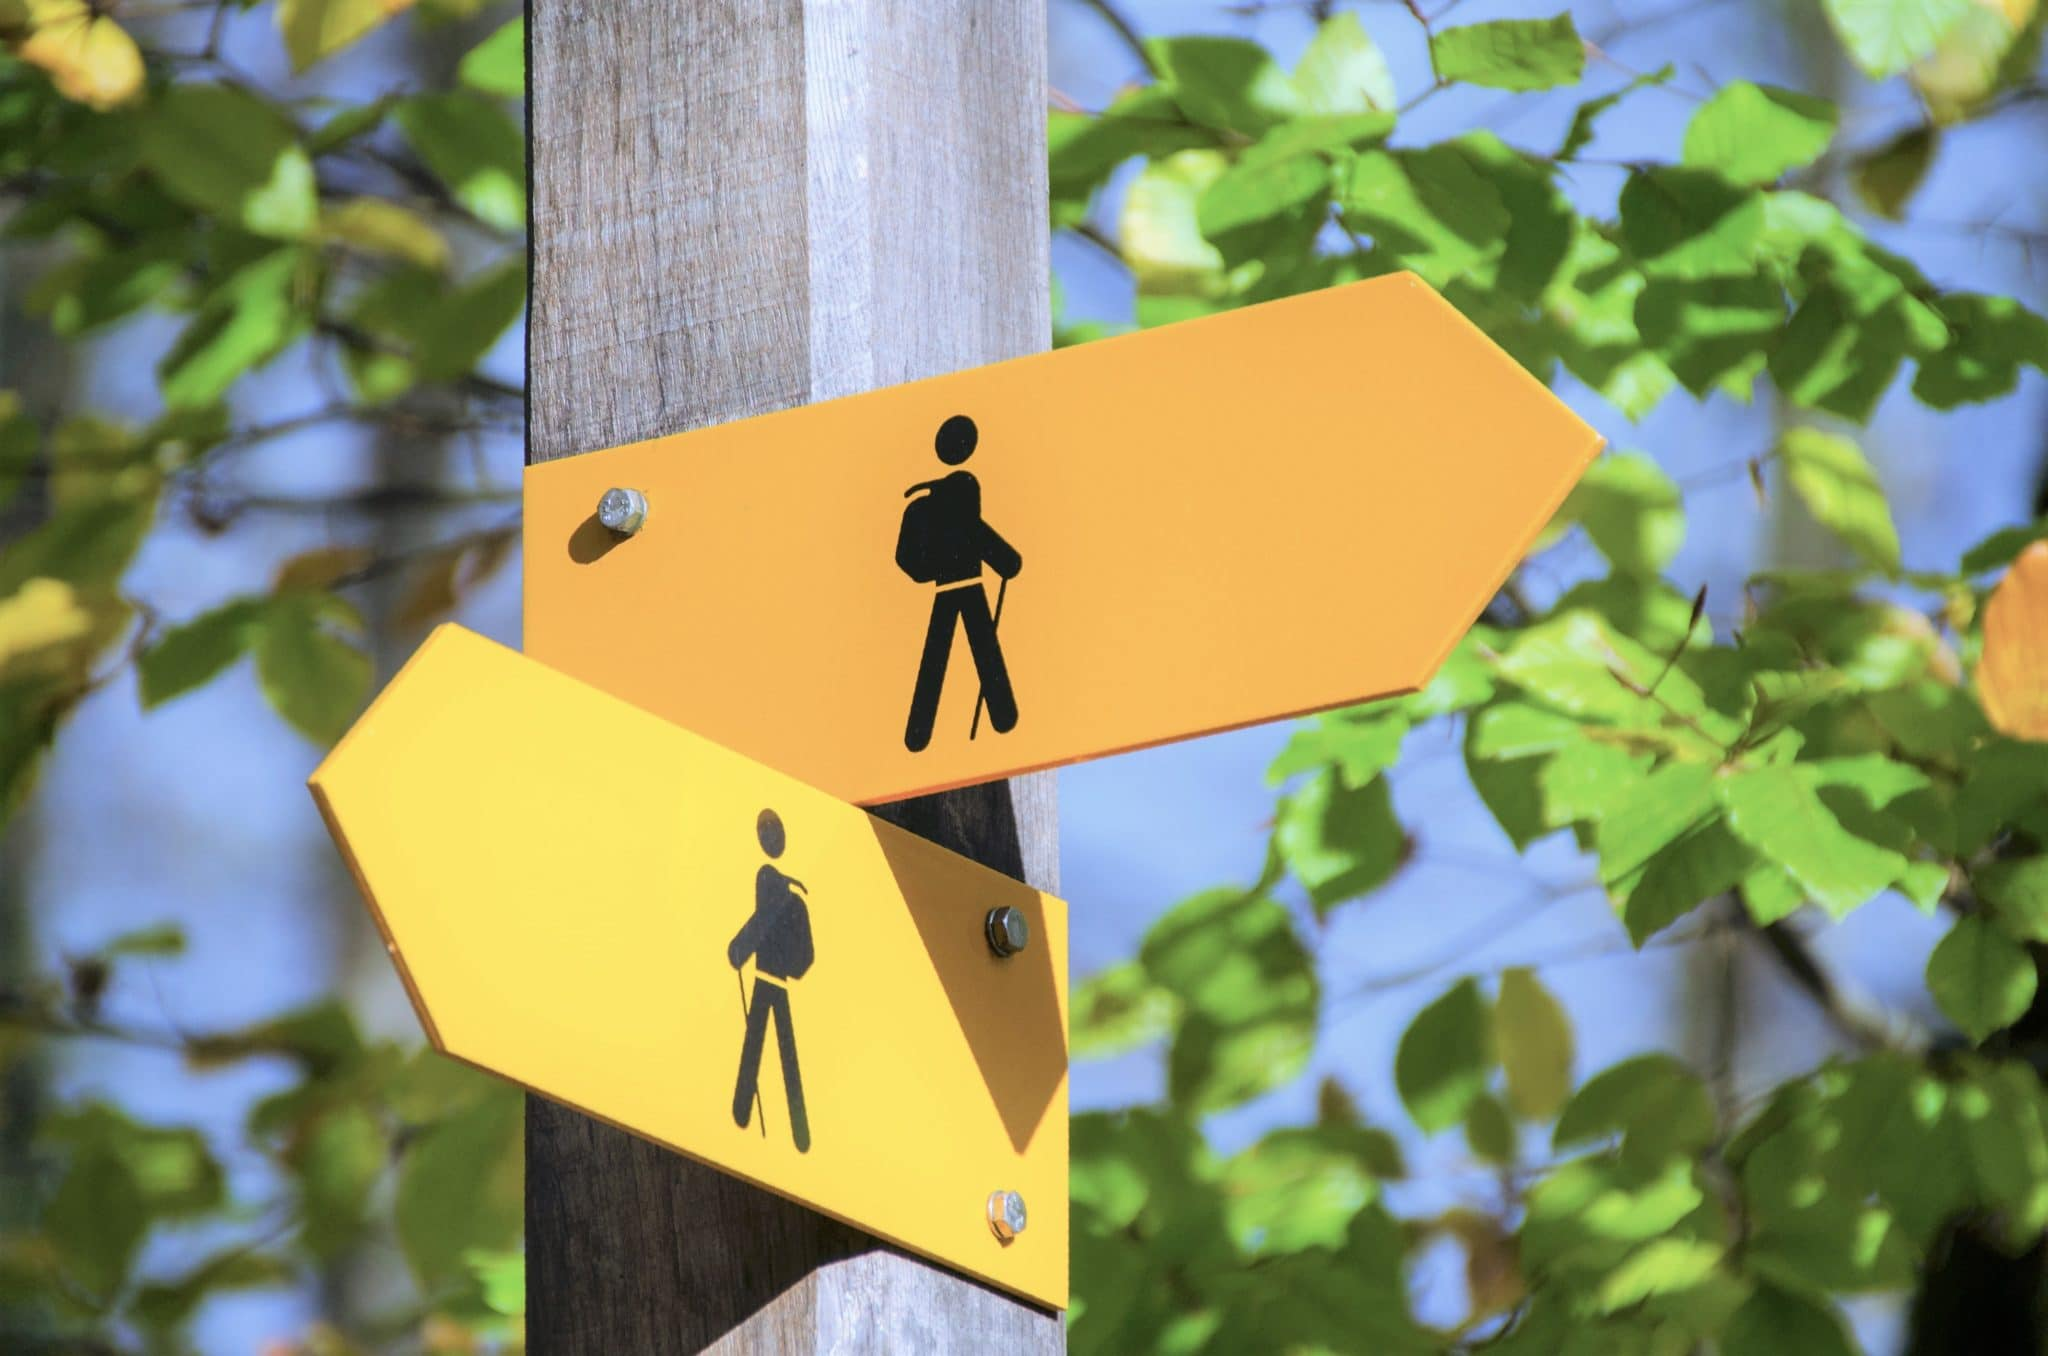 Signpost with two yellow arrows, one pointing left and the other pointing right, both displaying symbol of hiking person. Refers to alternatives to preliminary buyer walkthroughs.